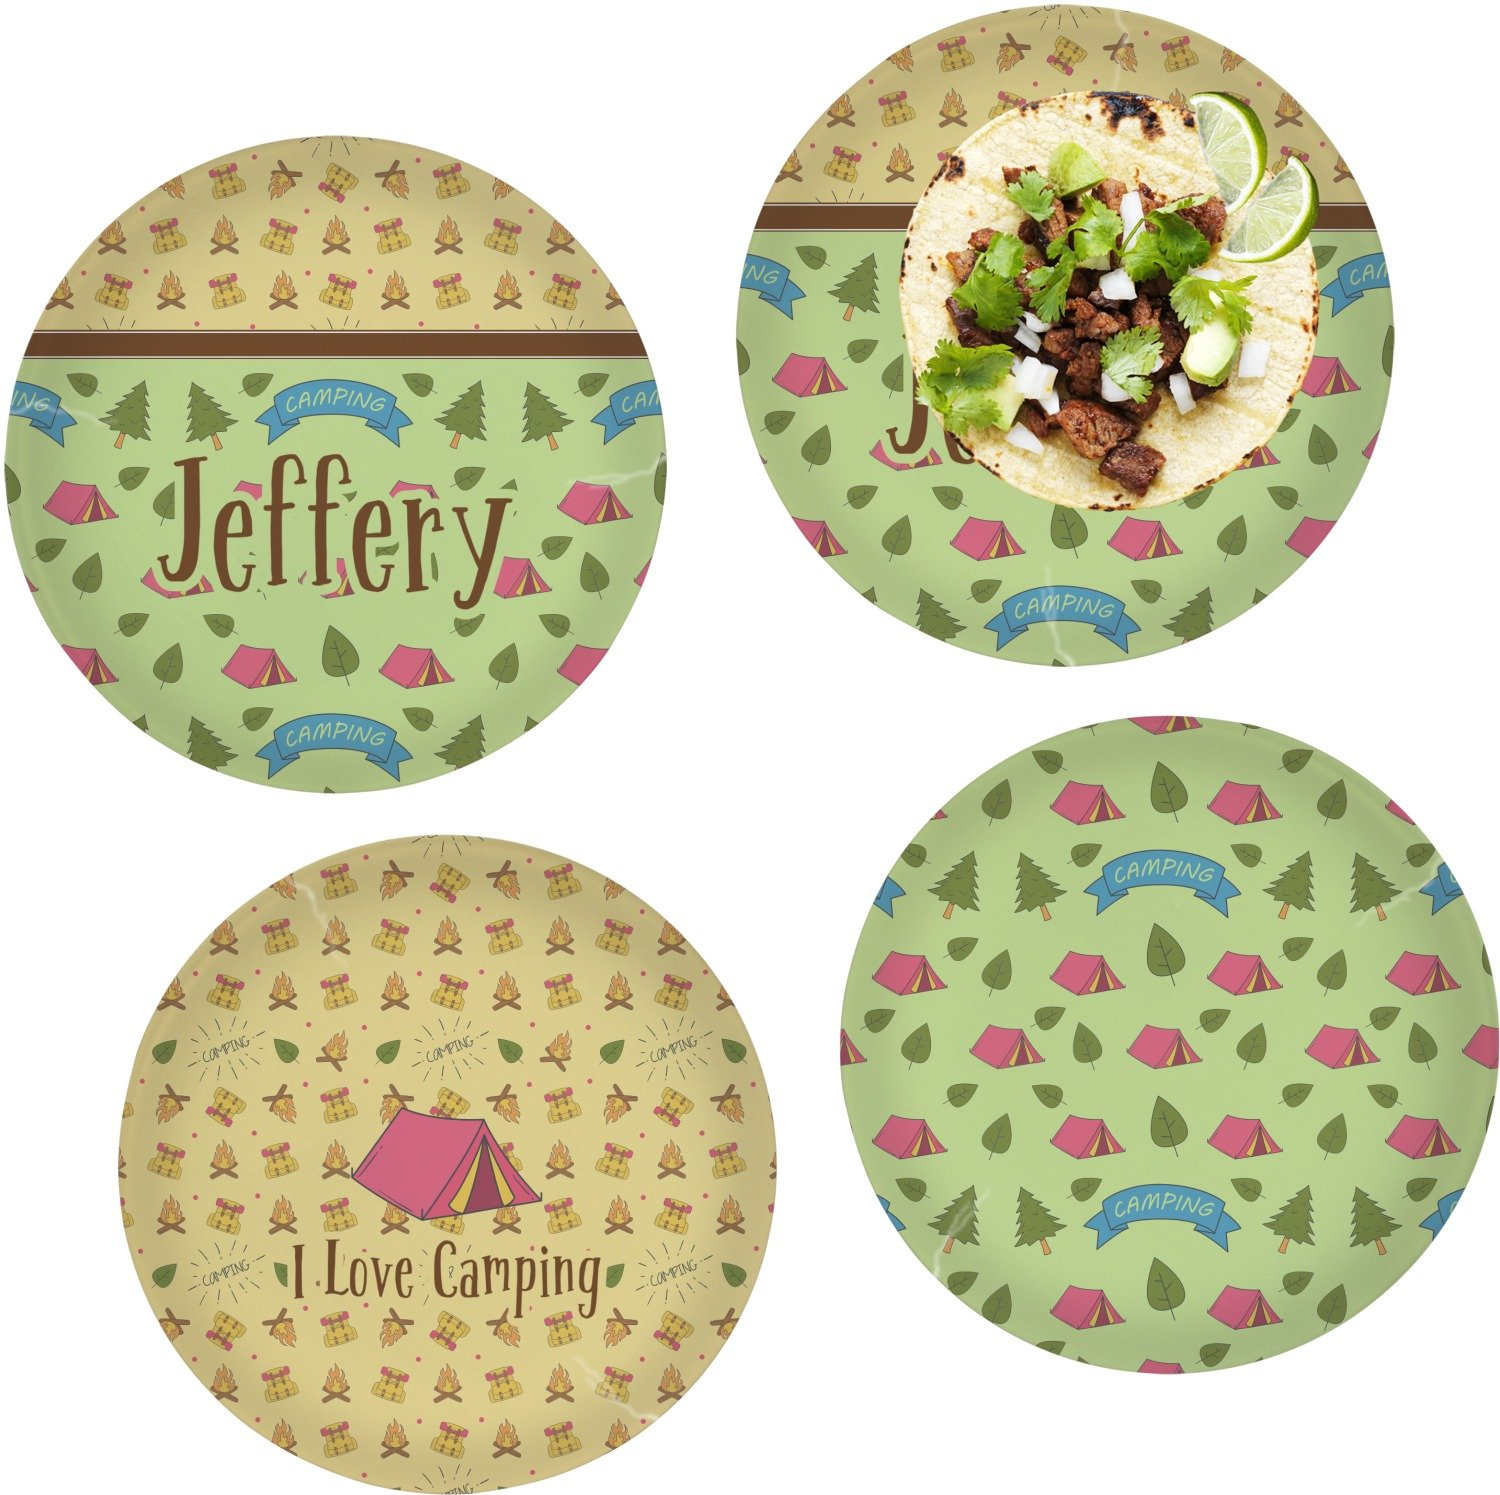 Summer Camping Set of 4 Lunch / Dinner Plates (Glass) (Personalized)